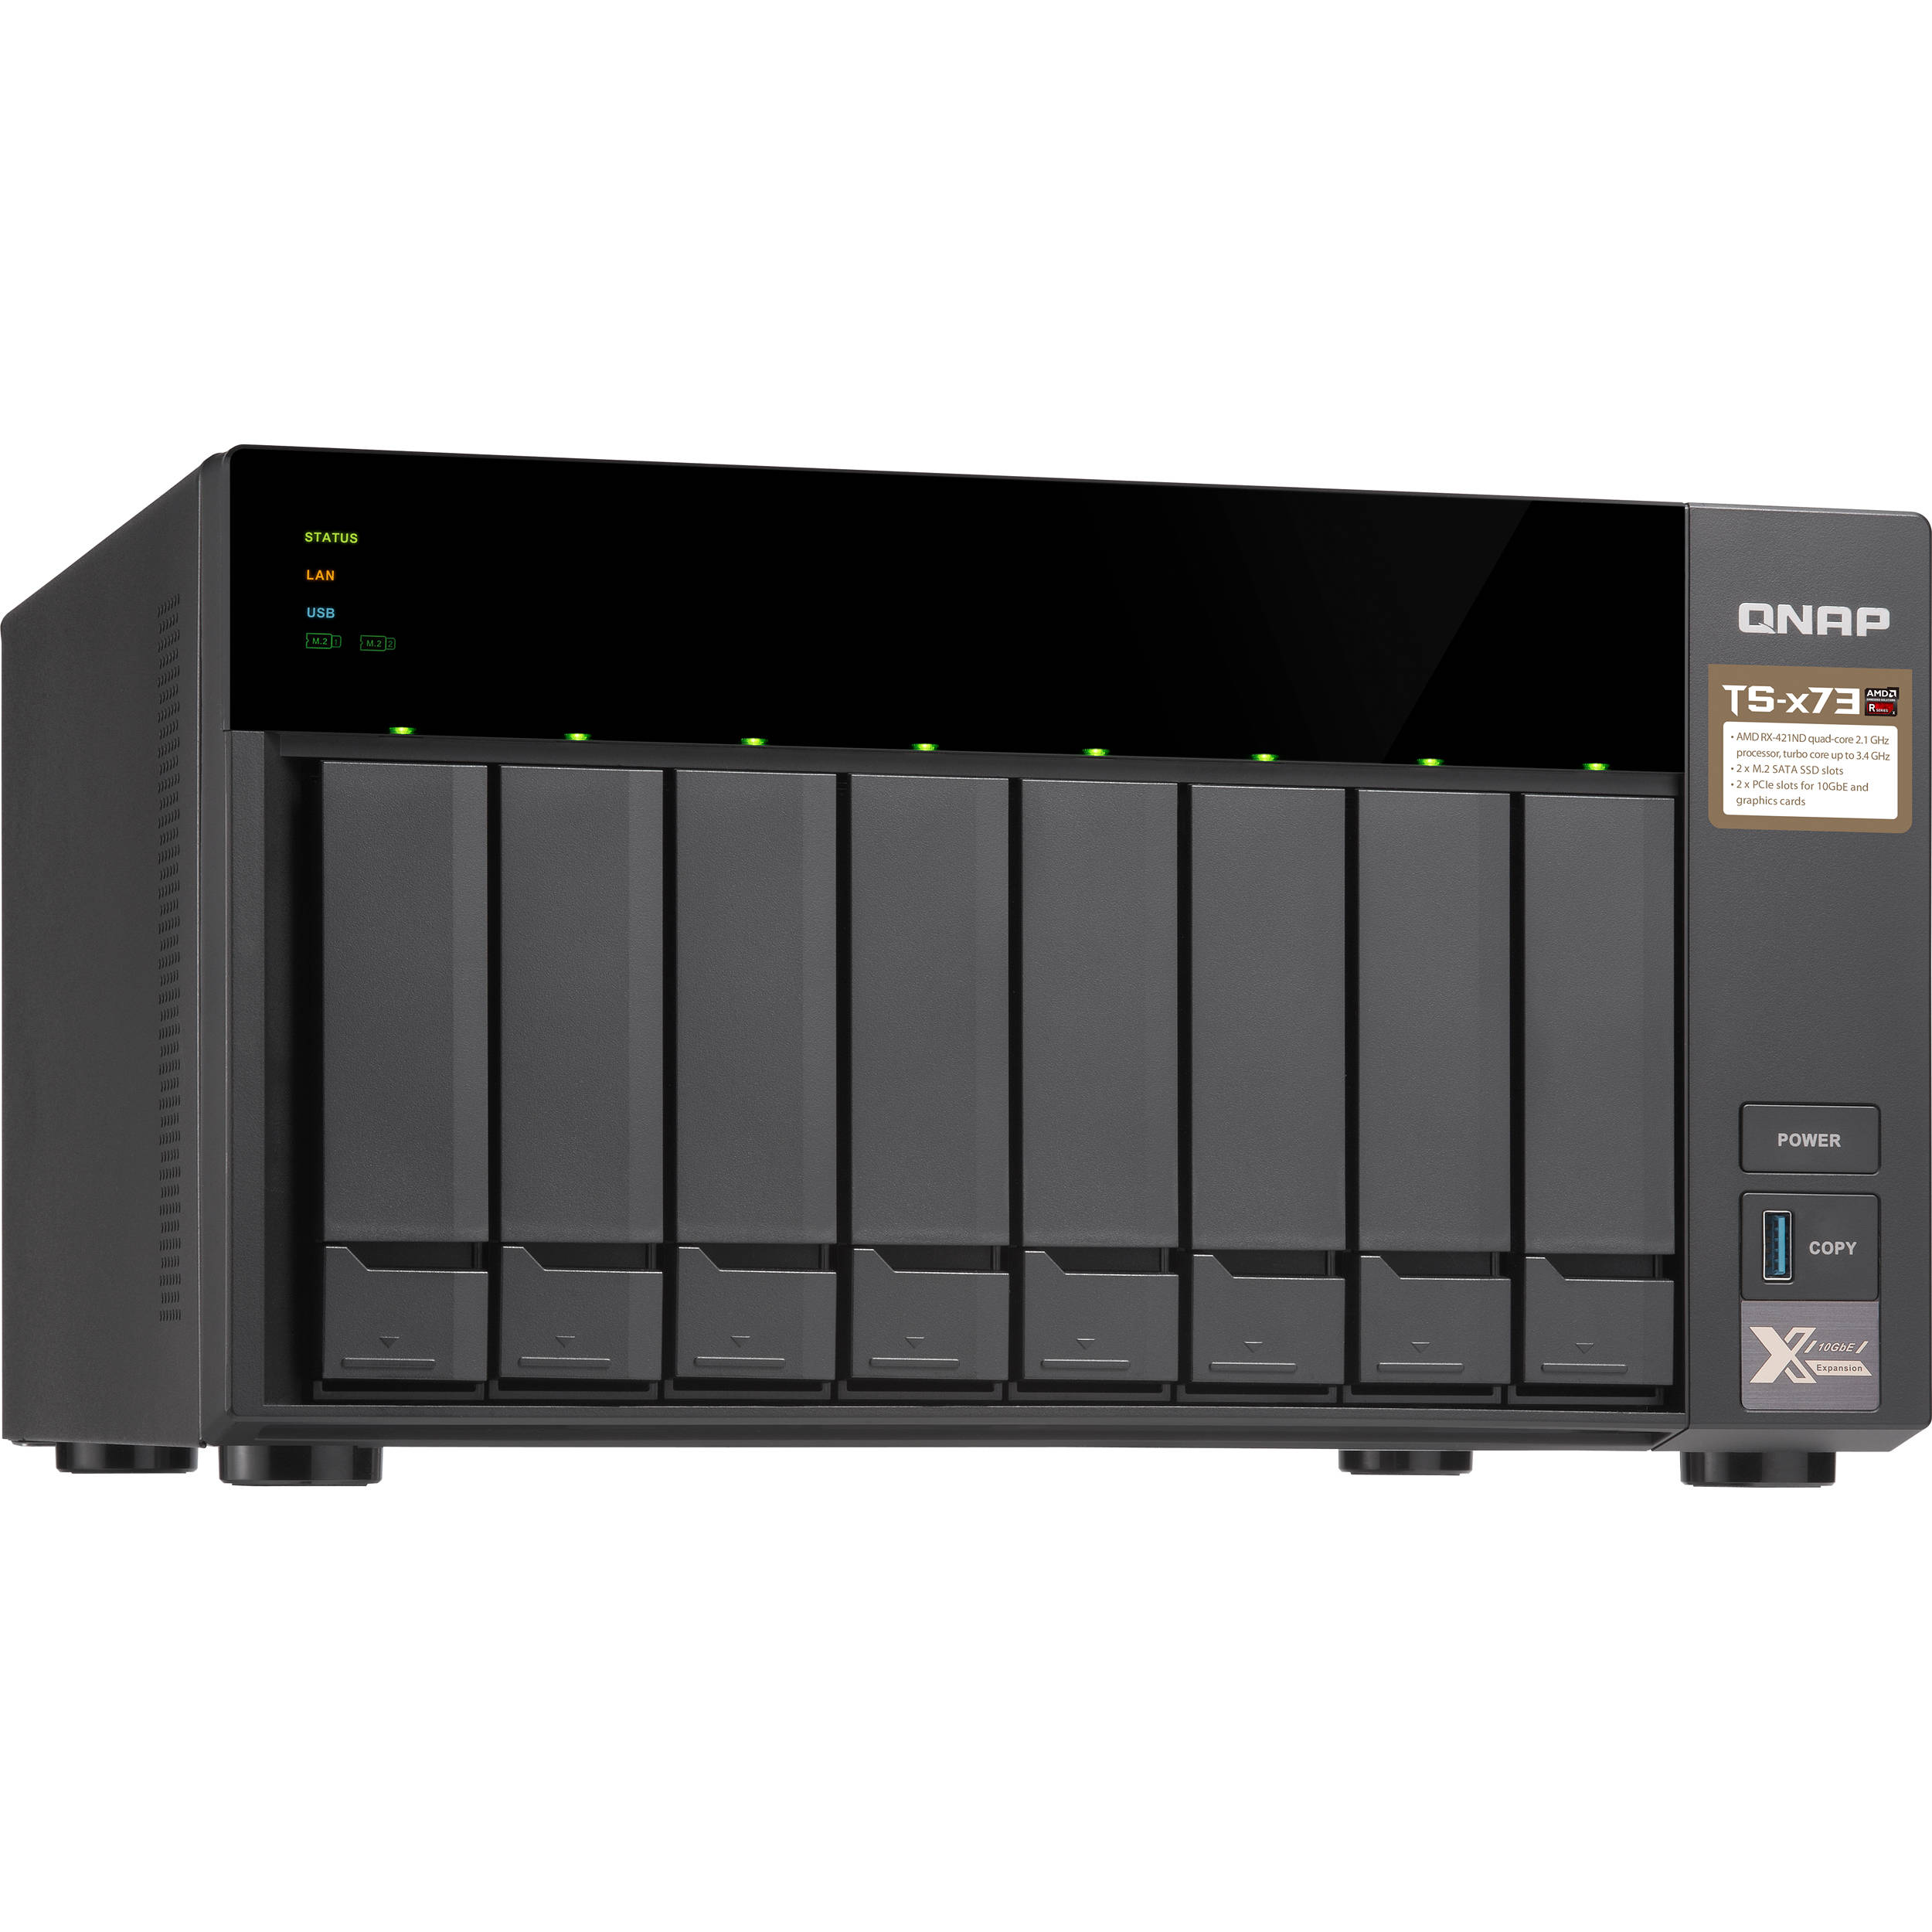 QNAP TS-873 8-Bay NAS Enclosure